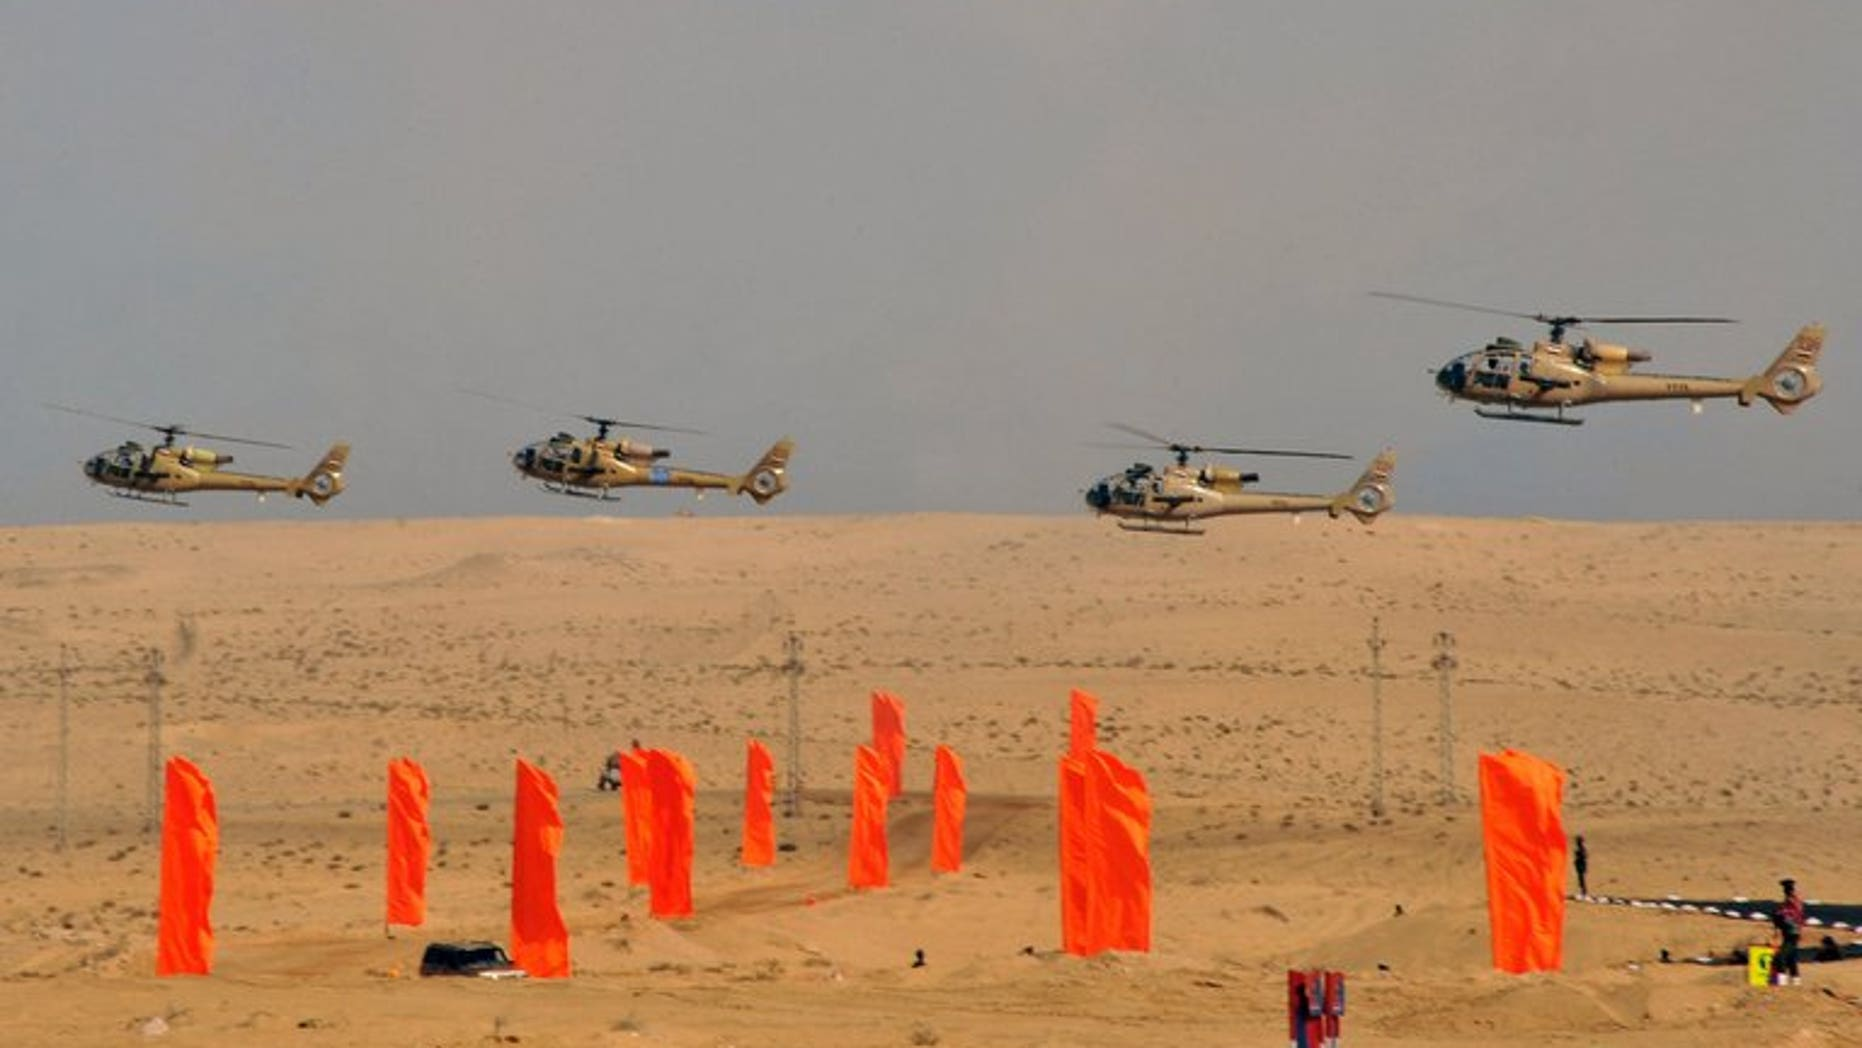 Egyptian military helicopters display military maneuvers in eastern Sinai on October 18, 2012, in a photo released by the Egyptian president's office. Egyptian military helicopters on Friday carried out air strikes on Islamist militant positions in Sinai, two days after suicide bombers killed six soldiers in the restive peninsula, security sources said.